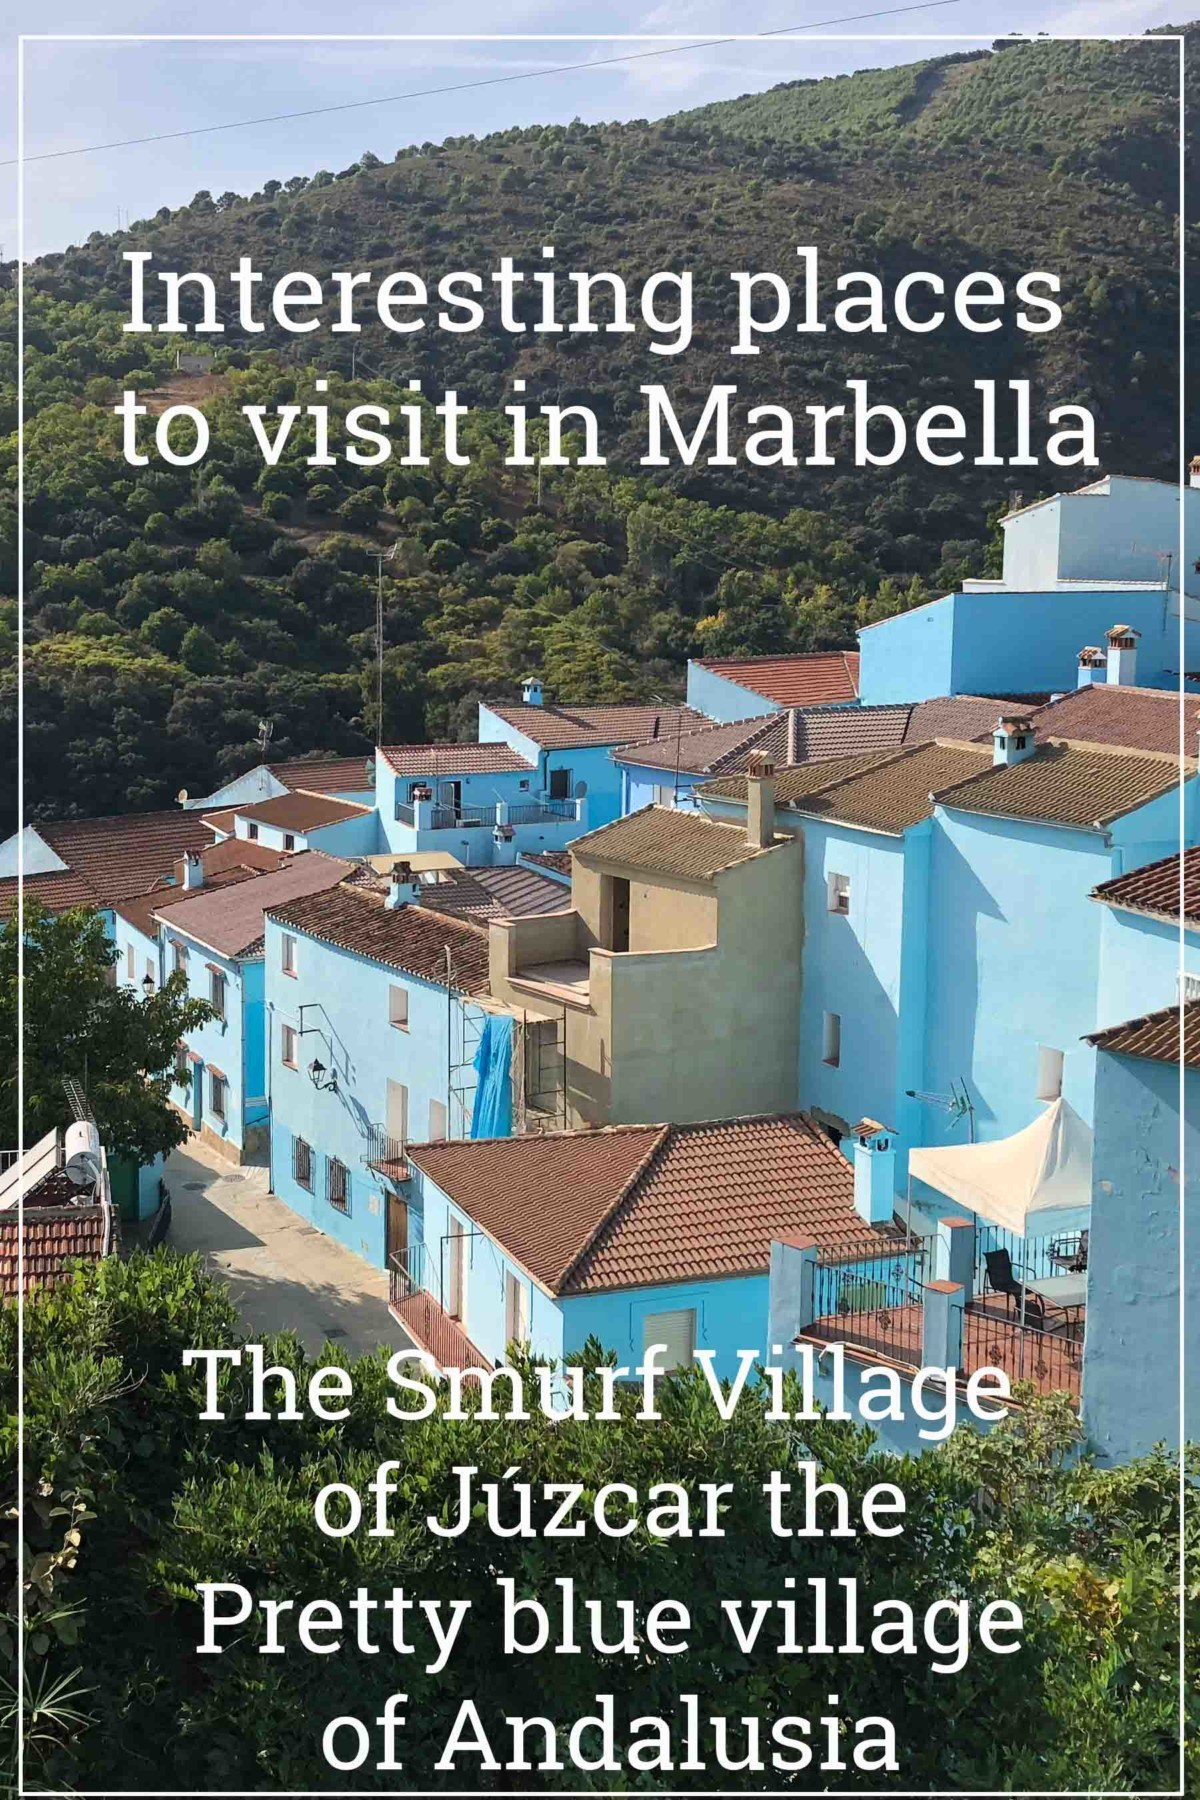 The Smurf Village of Júzcar the Pretty blue village of Andalusia